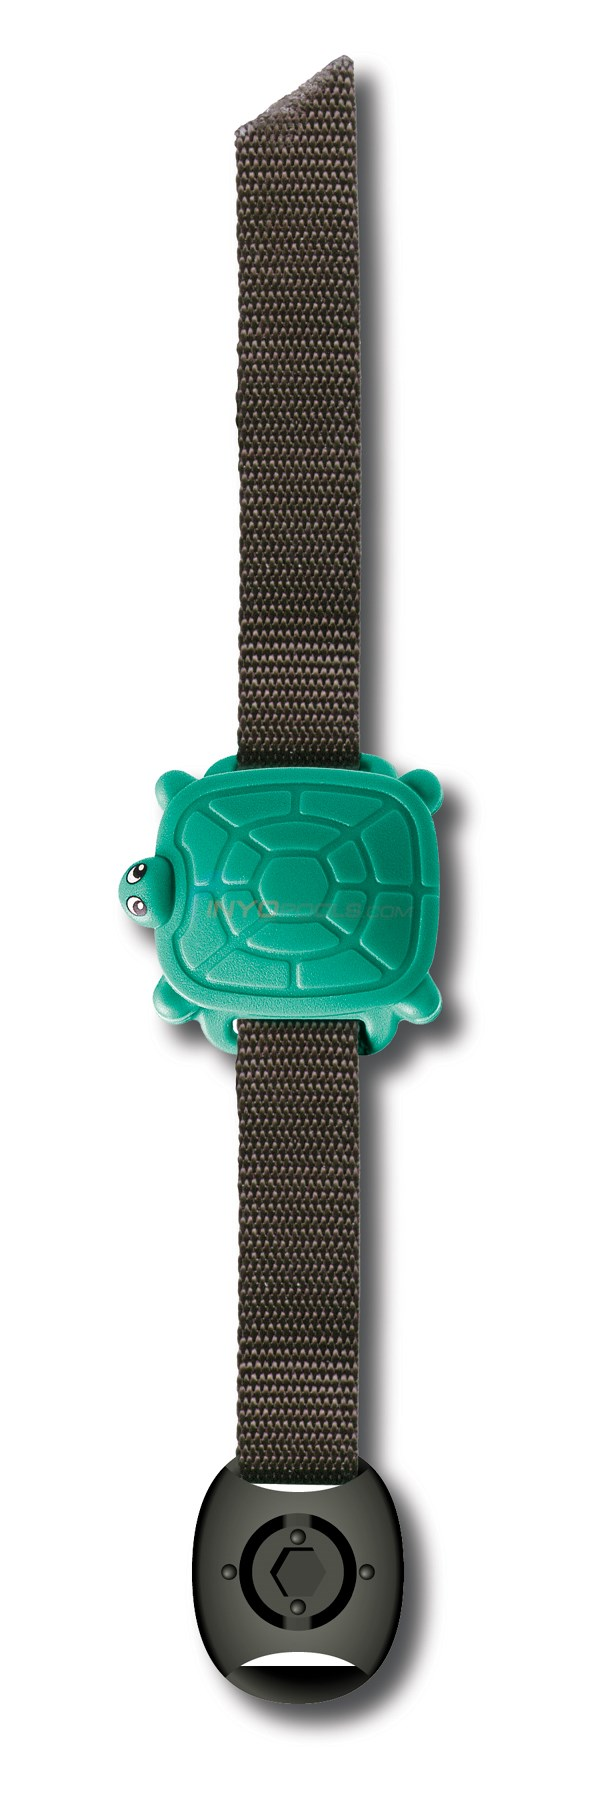 Terripan Safety Turtle Base Station w/ Green Wristband - Clearance - NA450 - Alternate 2